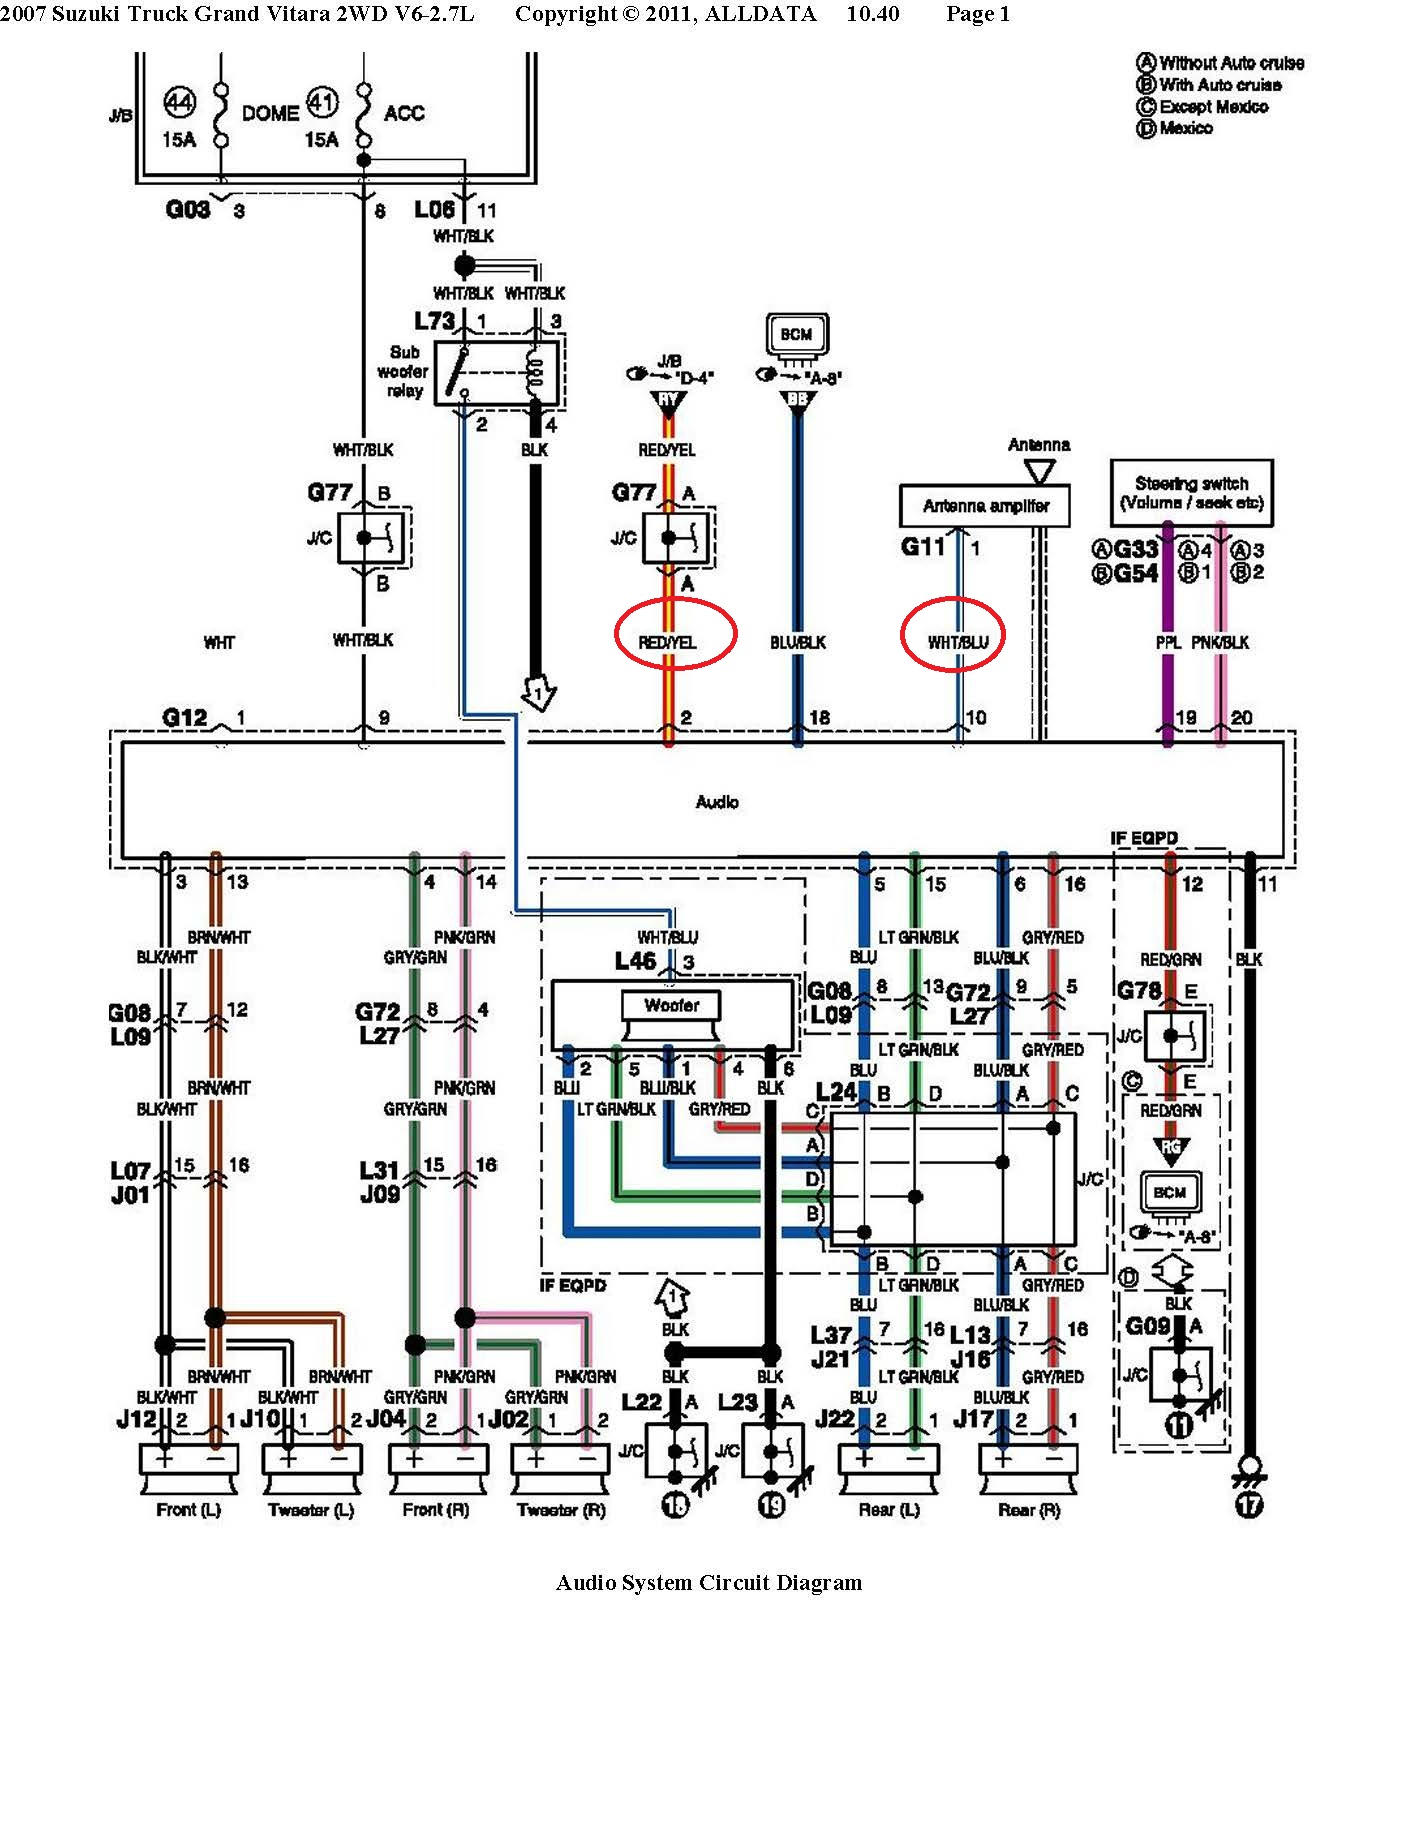 sx4 central locking wiring just wiring diagram sx4 central locking wiring [ 1420 x 1837 Pixel ]